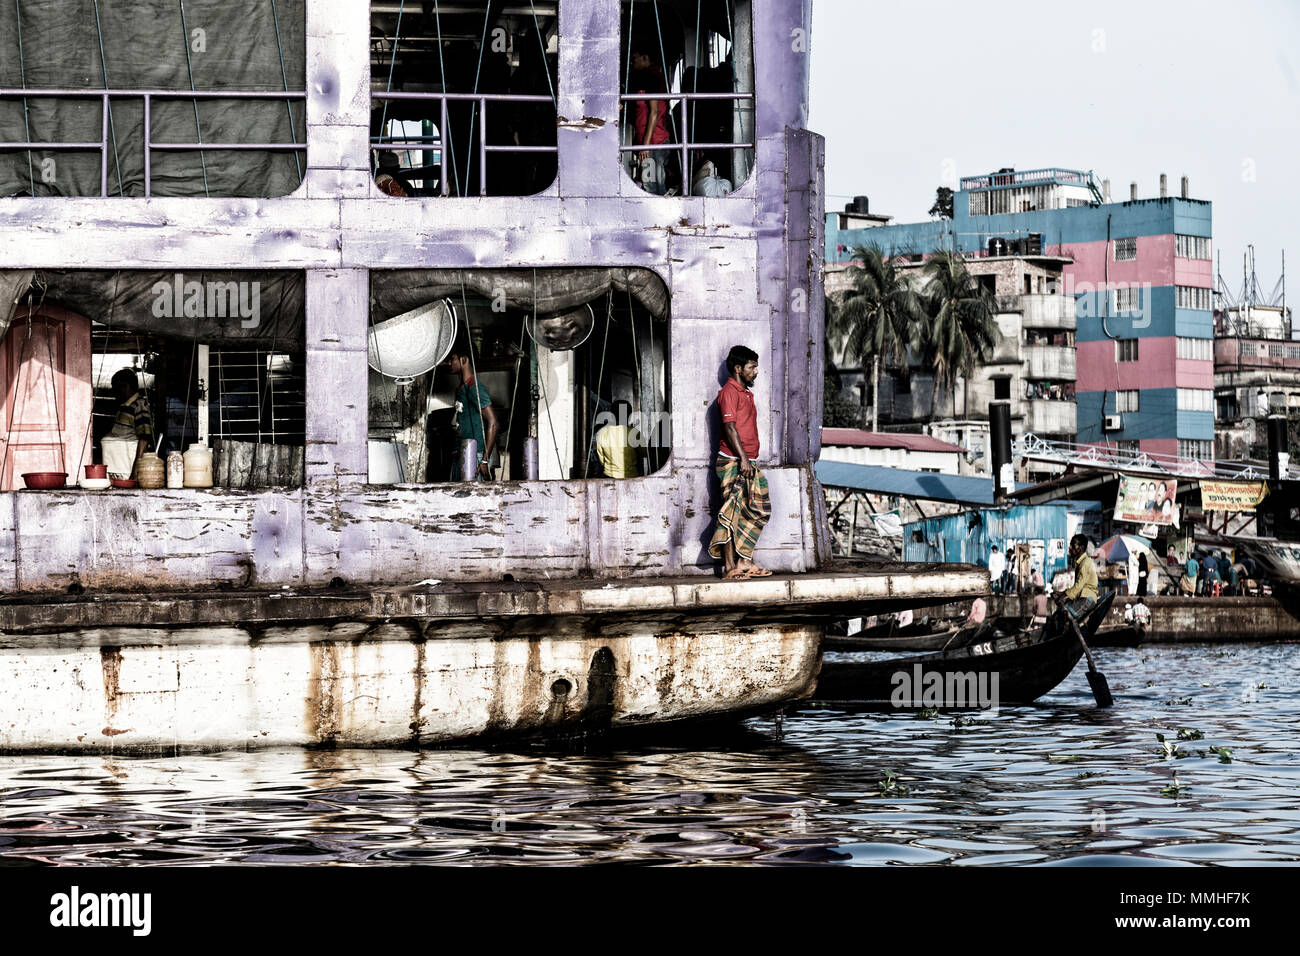 Dhaka, Bangladesh, February 24 2017: Man stands at the stern of an old ship and looks out over the Buriganga River, Sadarghat Terminal in Dhaka, Bangl - Stock Image